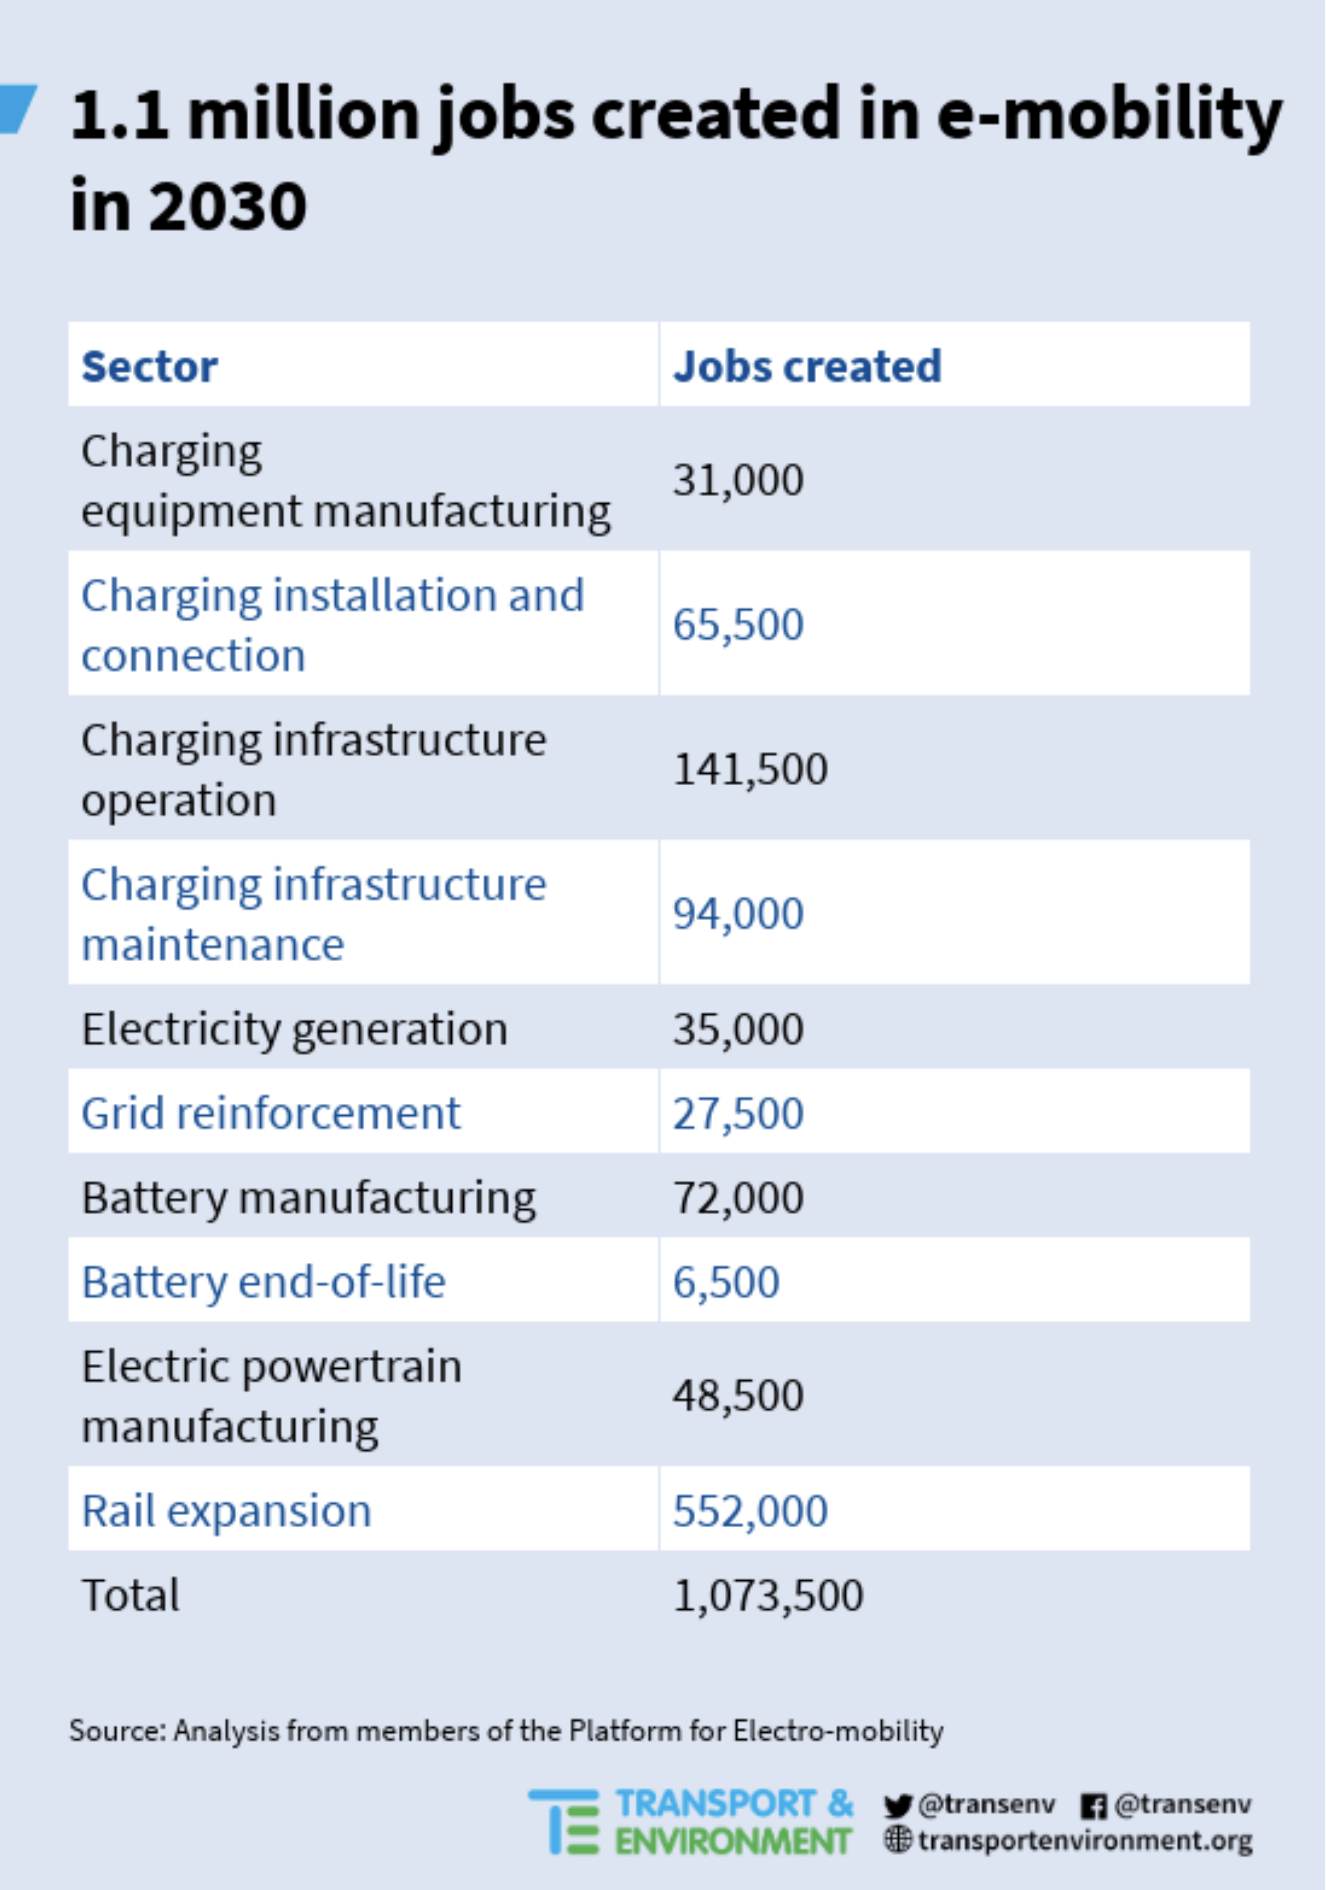 Transitioning to e-mobility could create more than 1 million jobs across the EU